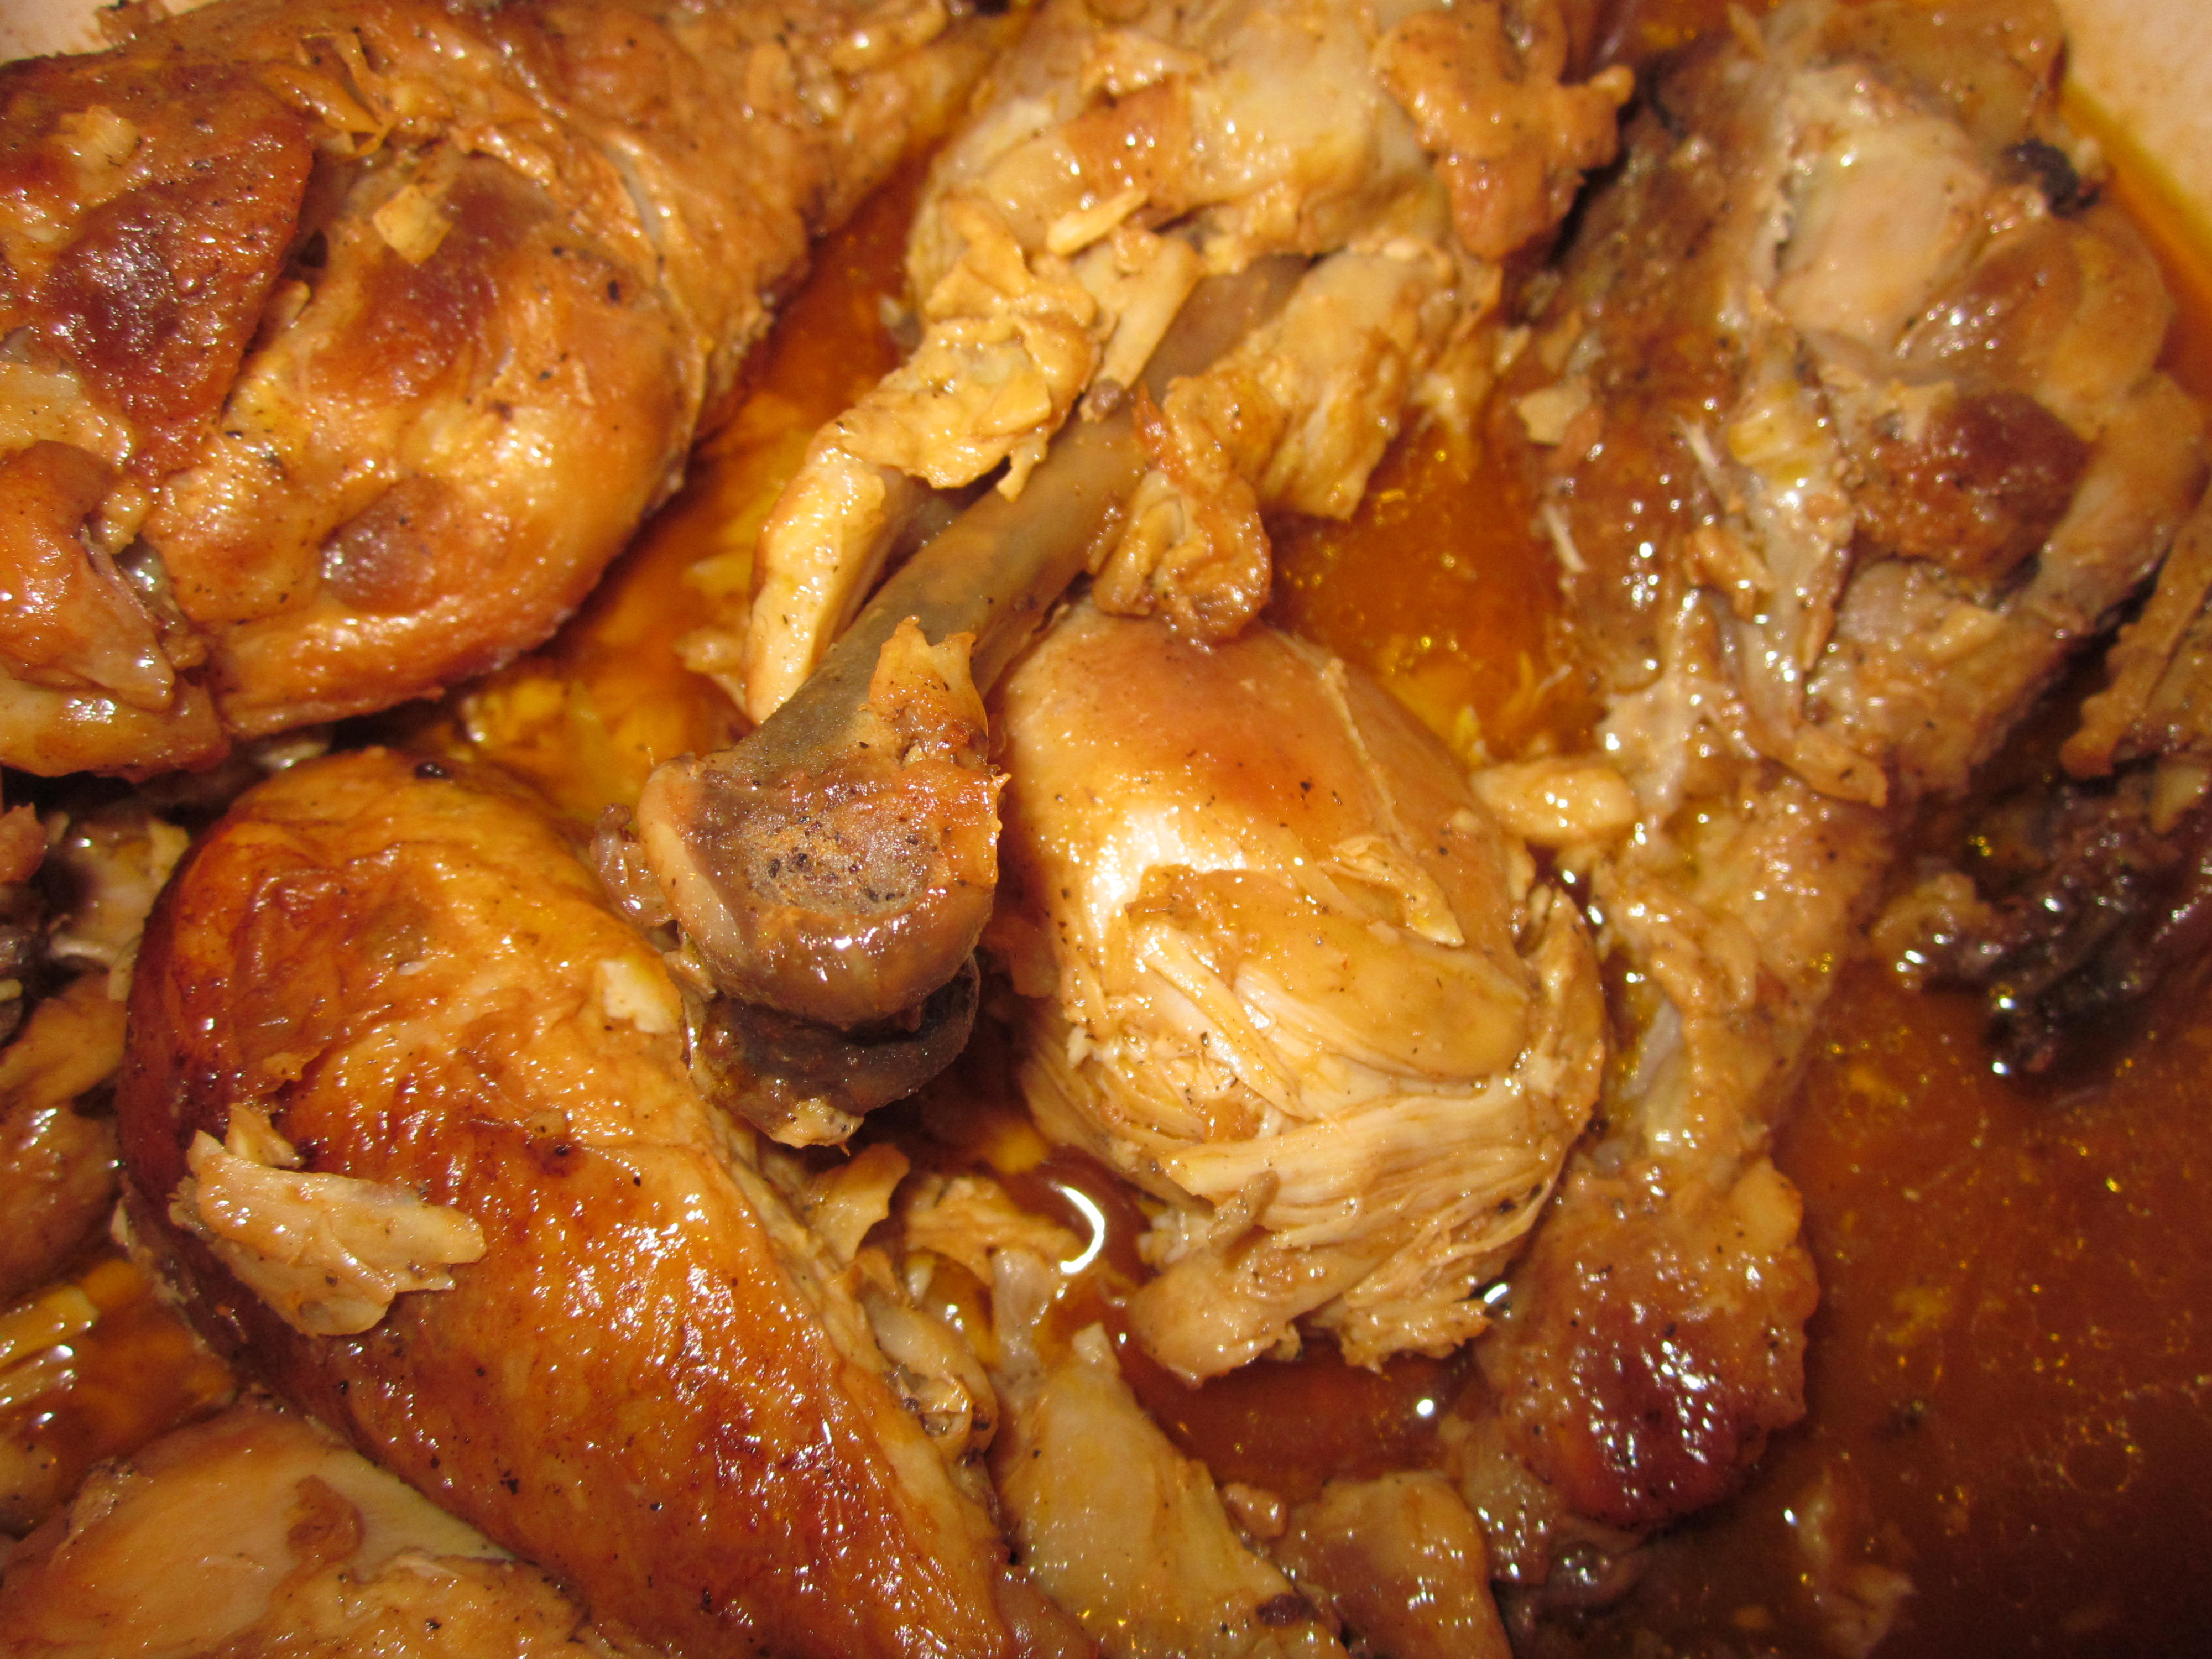 File:Homemade chicken adobo 3.JPG - Wikimedia Commons